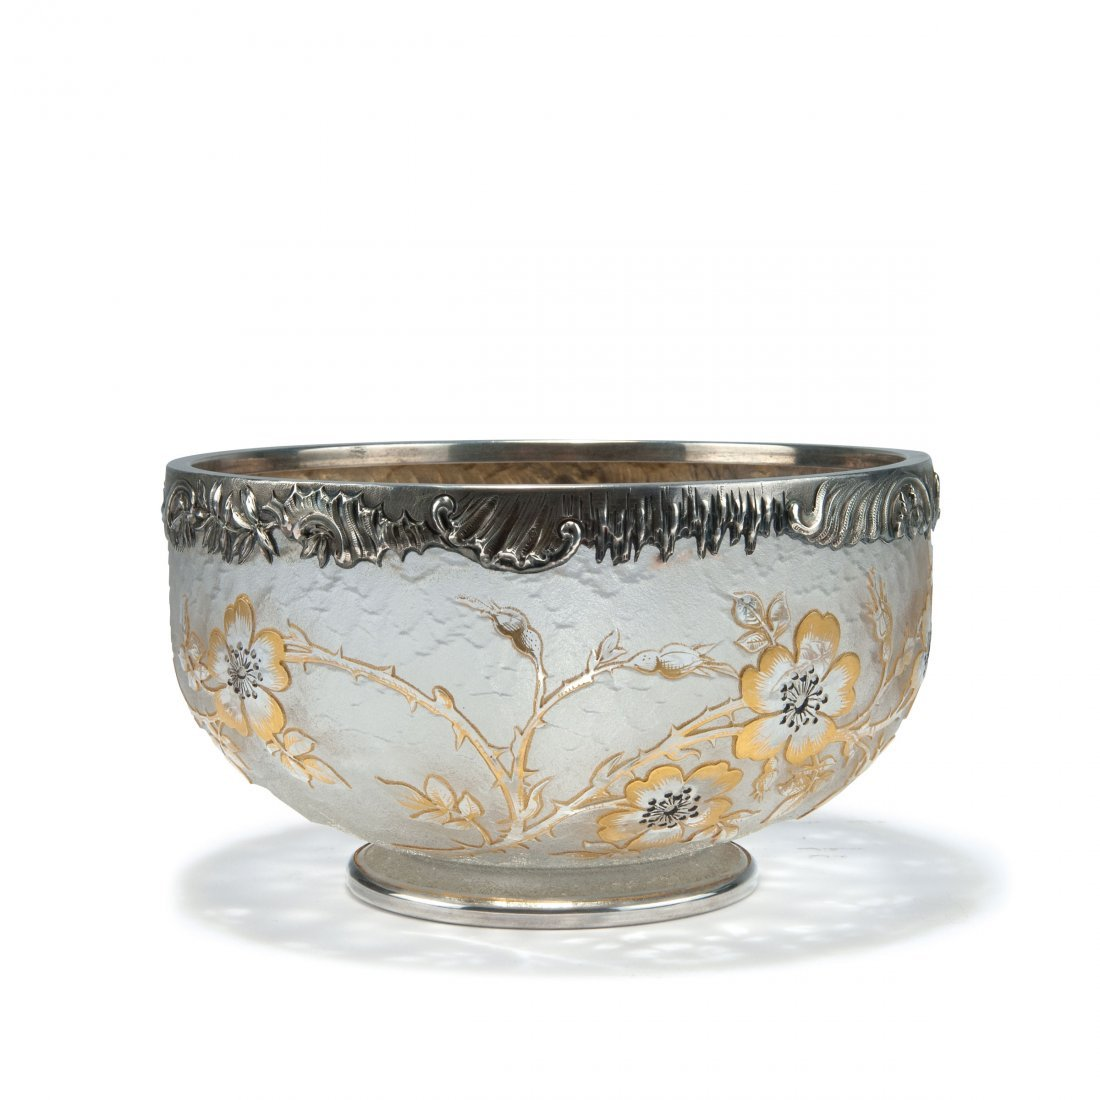 'Ronces' bowl with silver mounting by J. Martel, Paris,